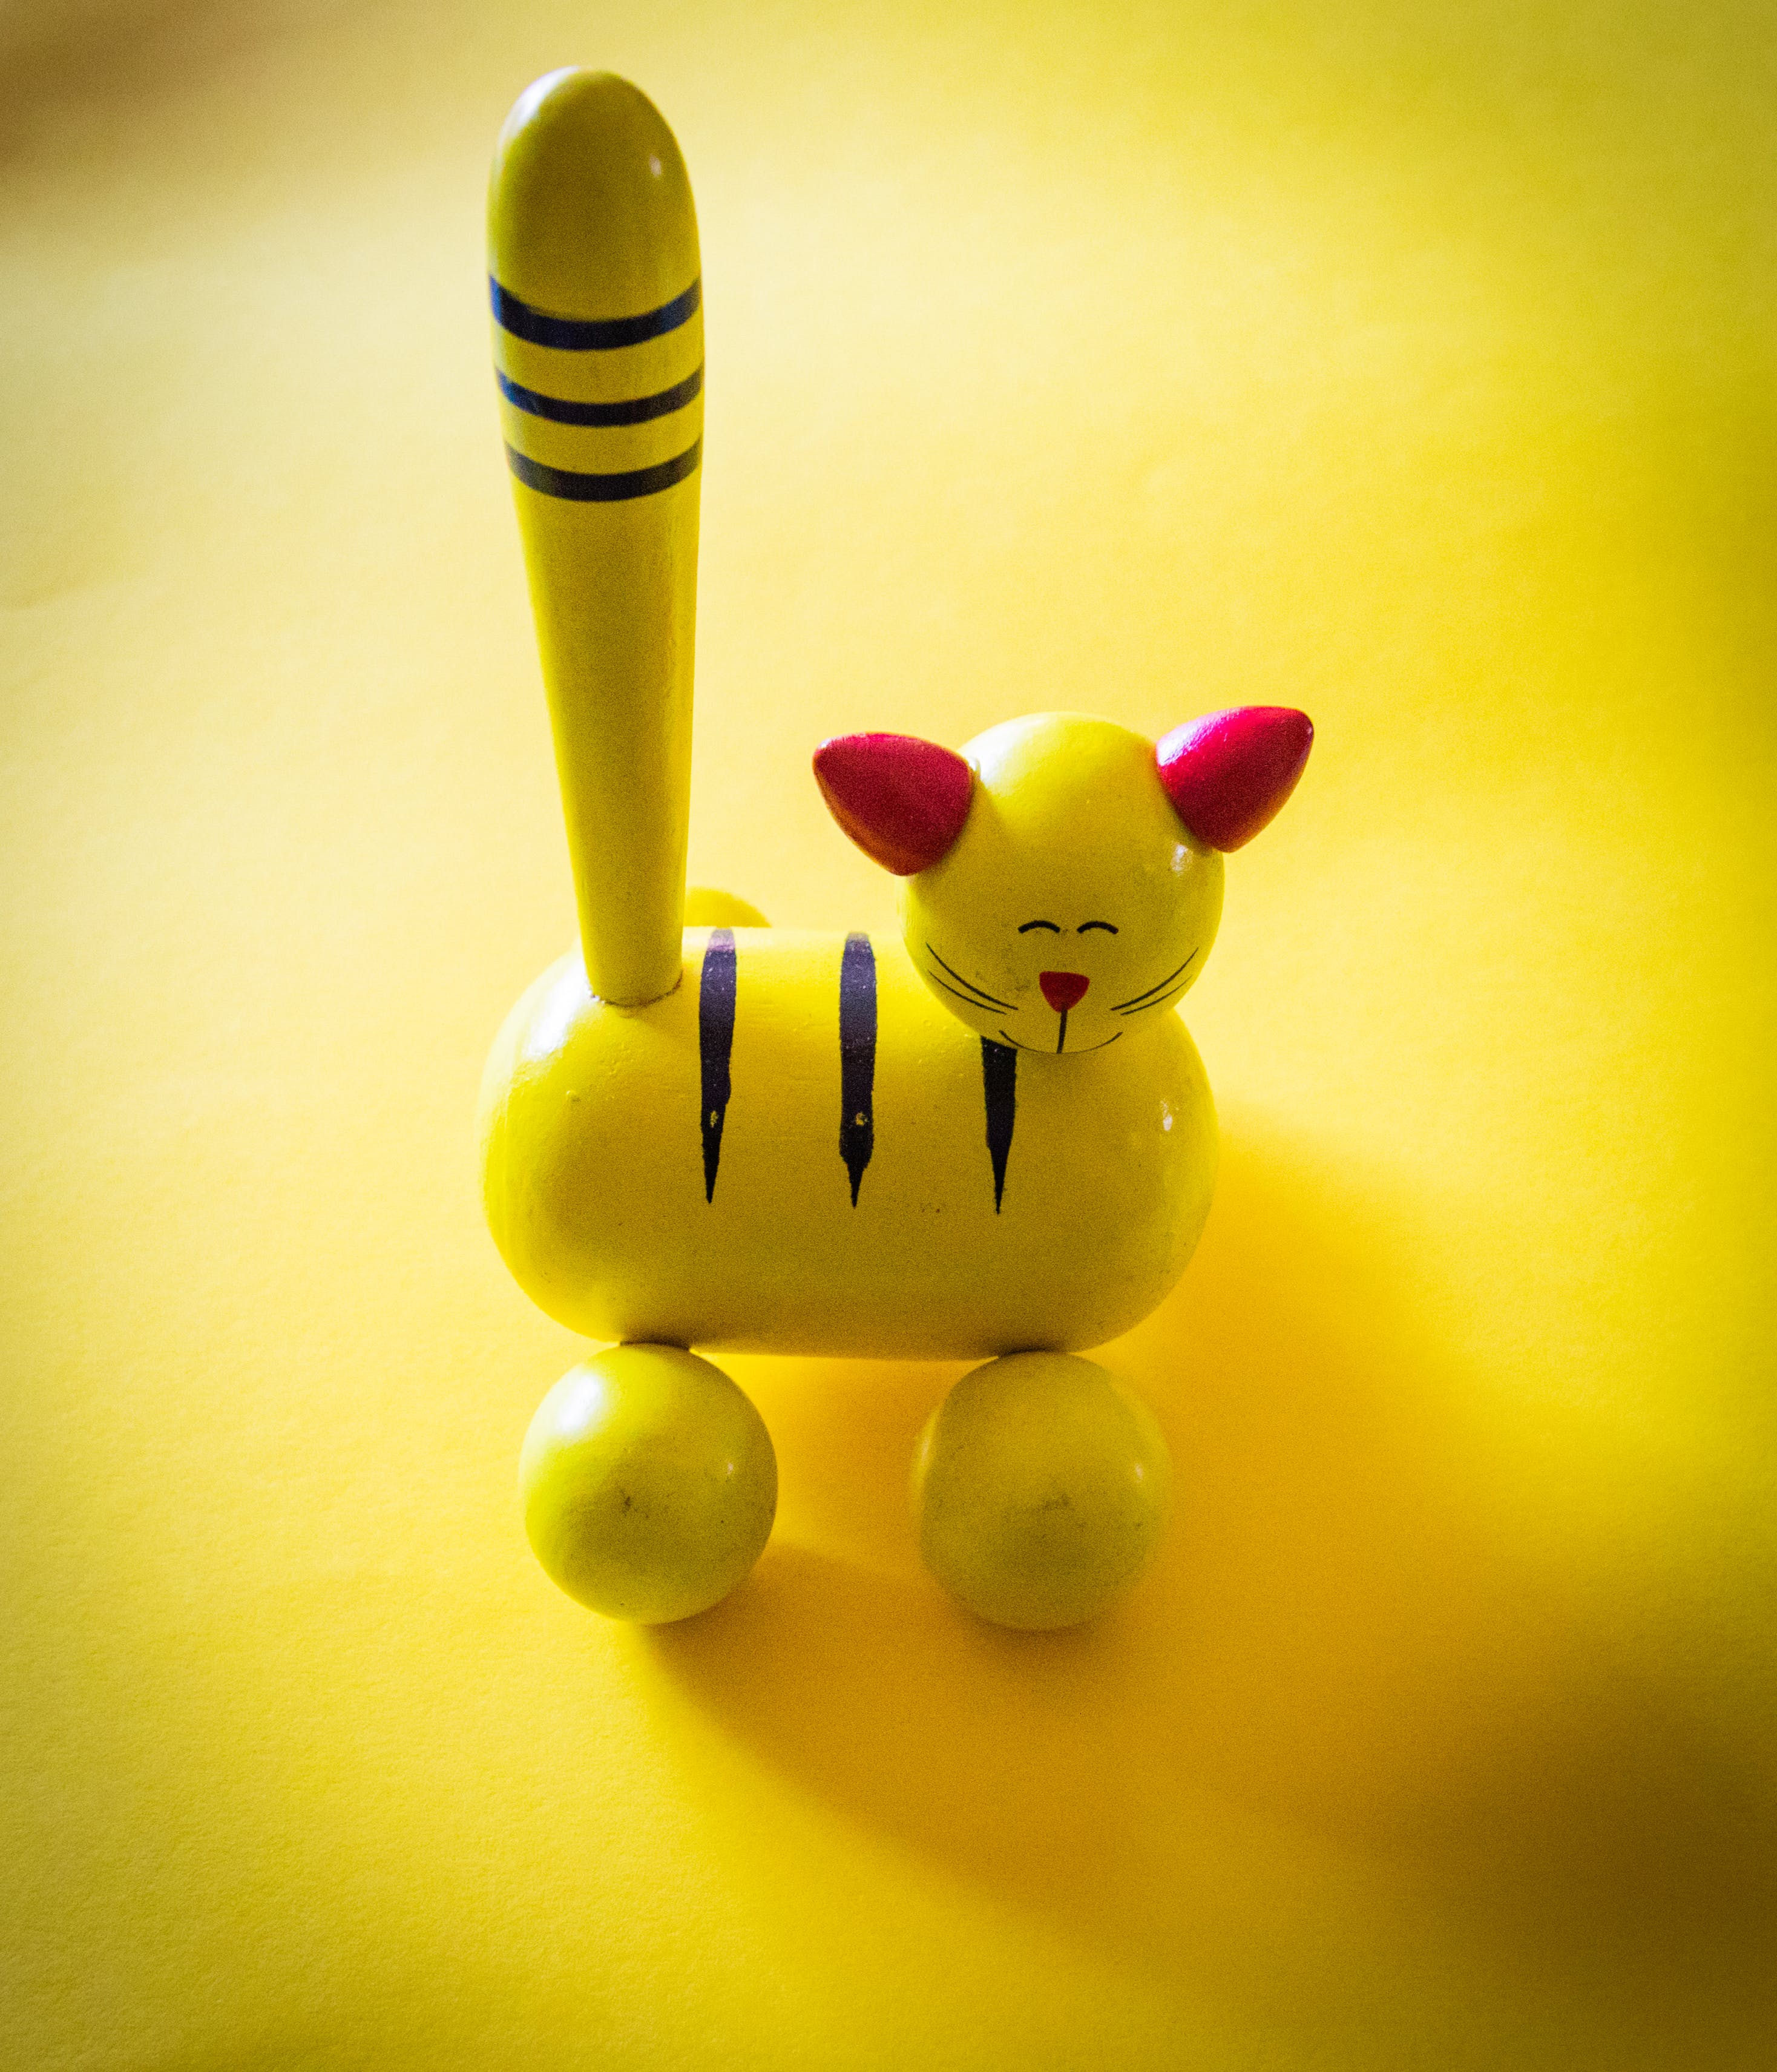 Yellow and Red Cat Figurine on Yellow Top